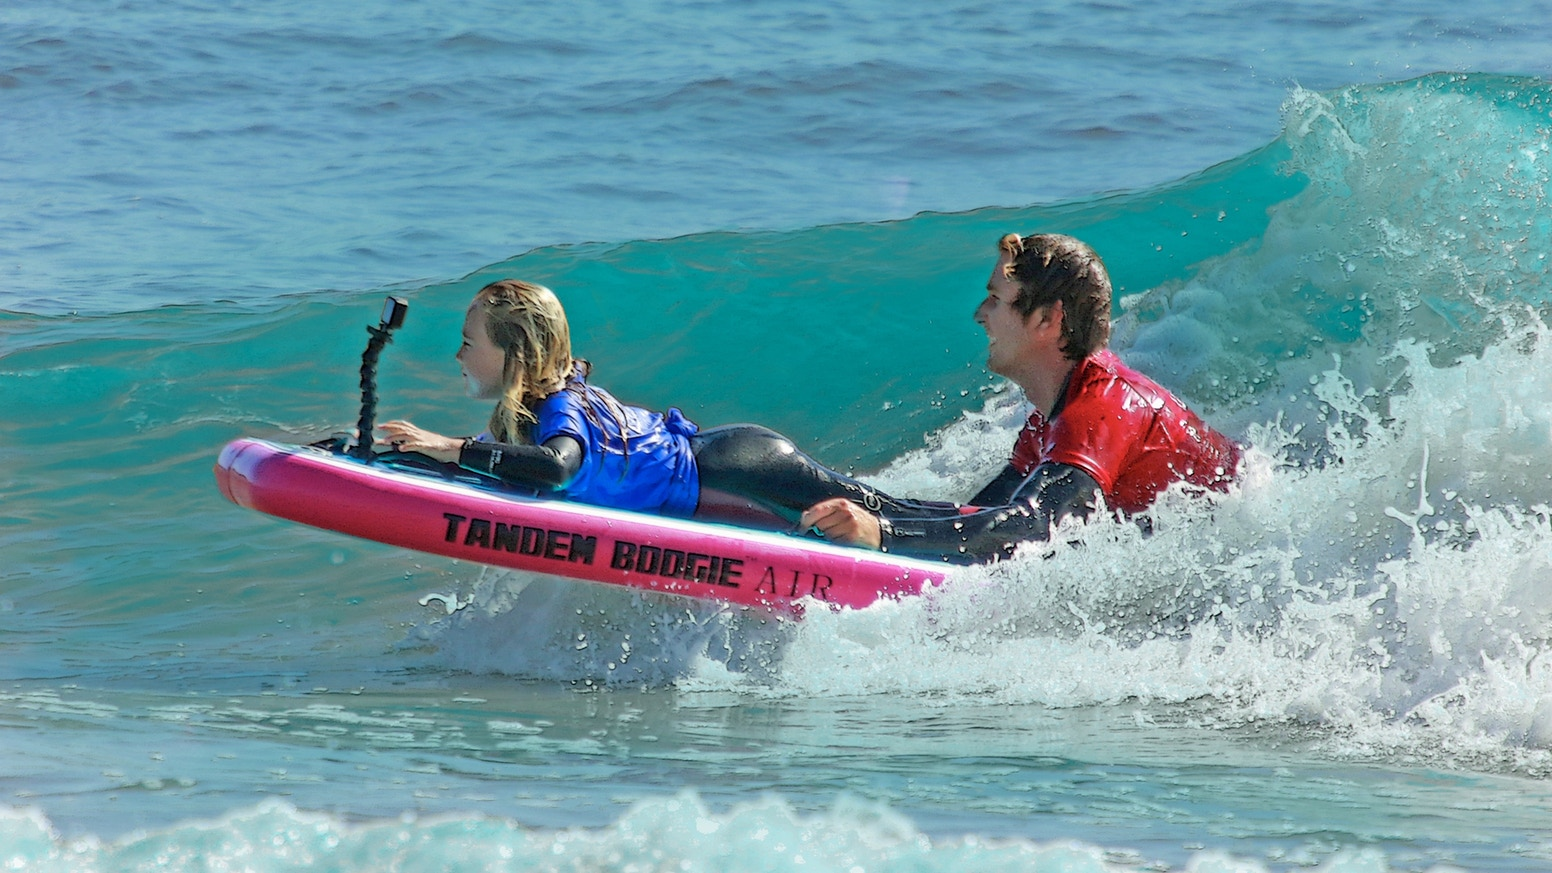 The Tandem Boogie™ Board's unique design allows two people to catch and ride waves together regardless of skill or ability.